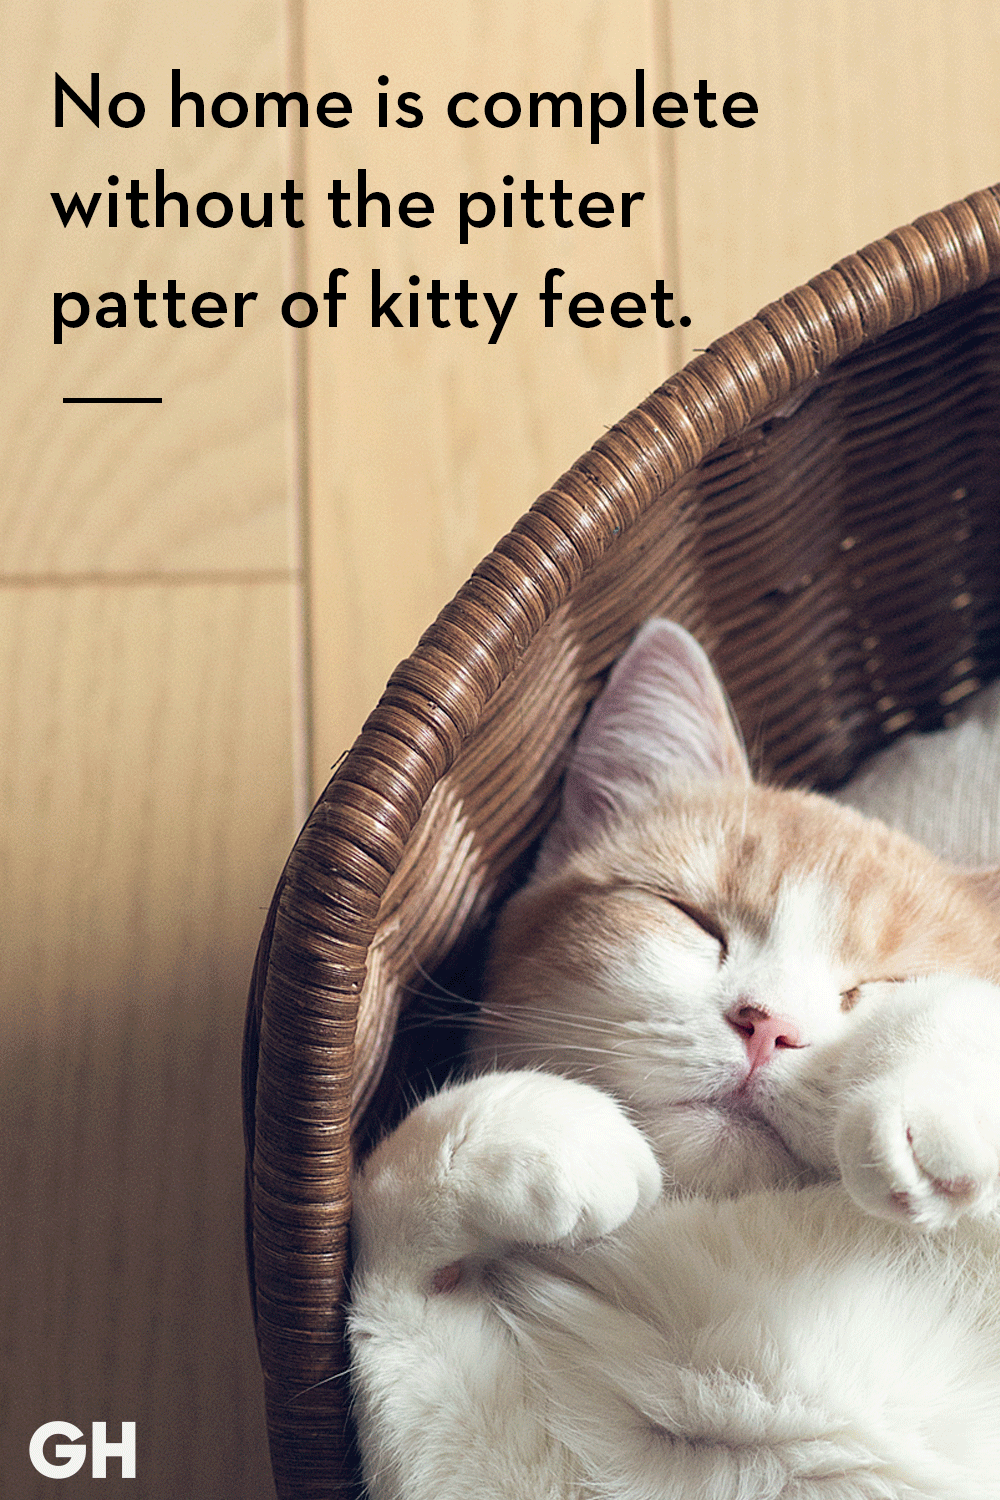 25 Quotes Only Cat Owners Will Understand Cat Quotes Funny Cat Quotes Cute Cat Quotes